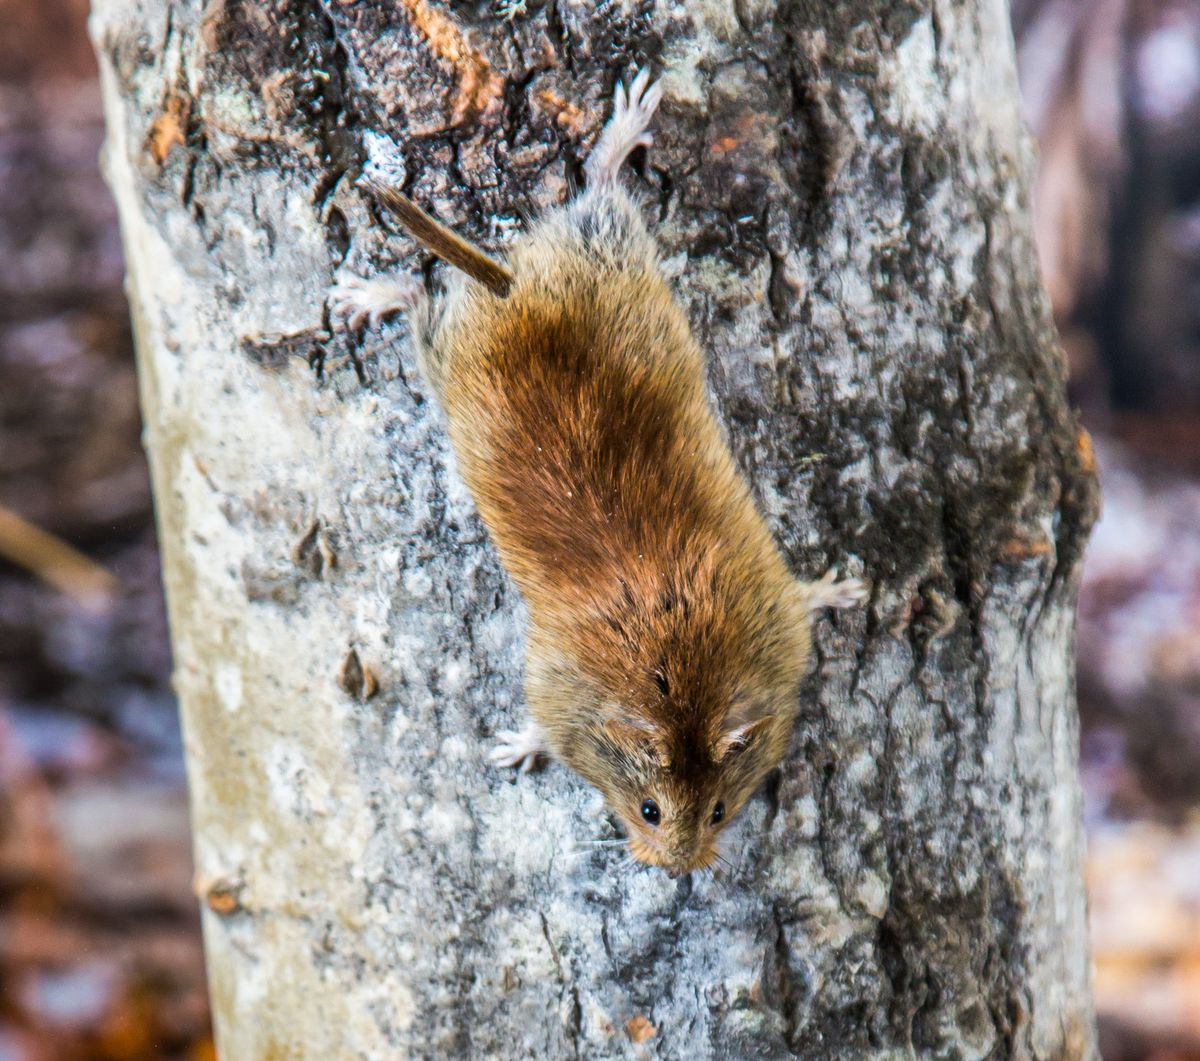 A northern red-backed vole climbing down a tree. (Photo by Todd Paris / UAF)